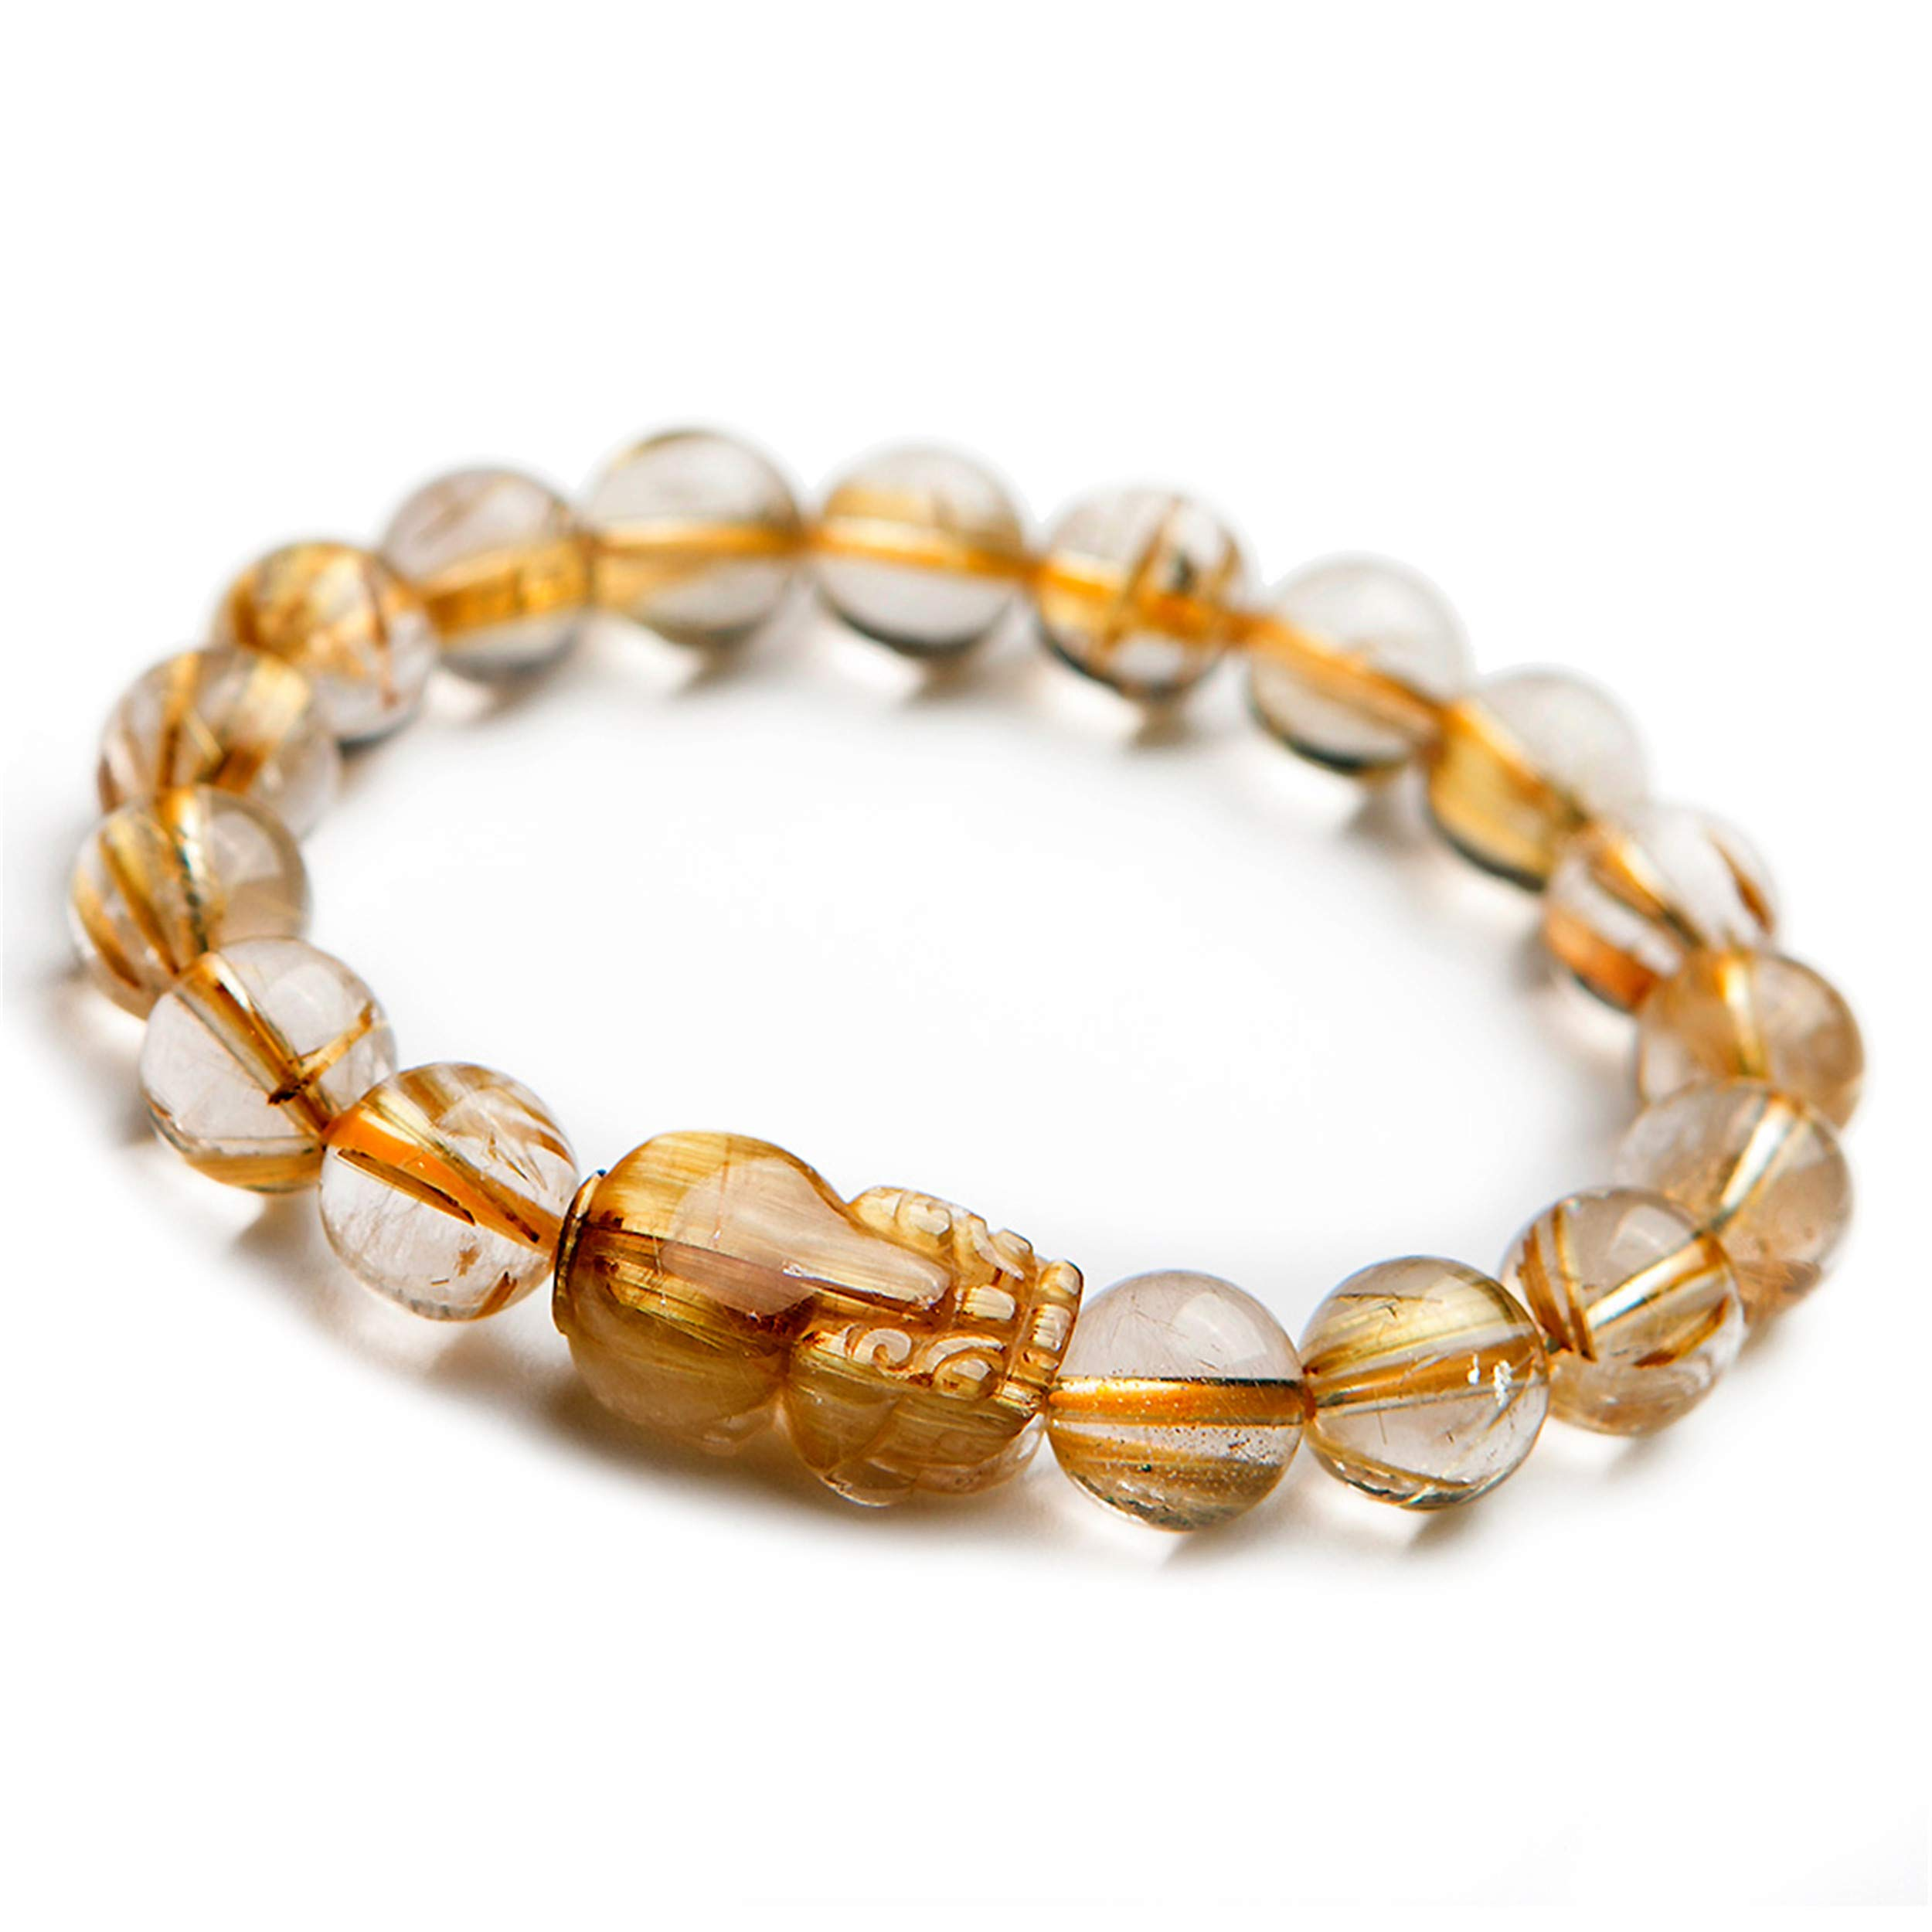 LiZiFang Genuine Natural Gold Rutilated Quartz Crystal Bracelets for Women Men Pixiu Round Bead Bracelet 11mm by LiZiFang